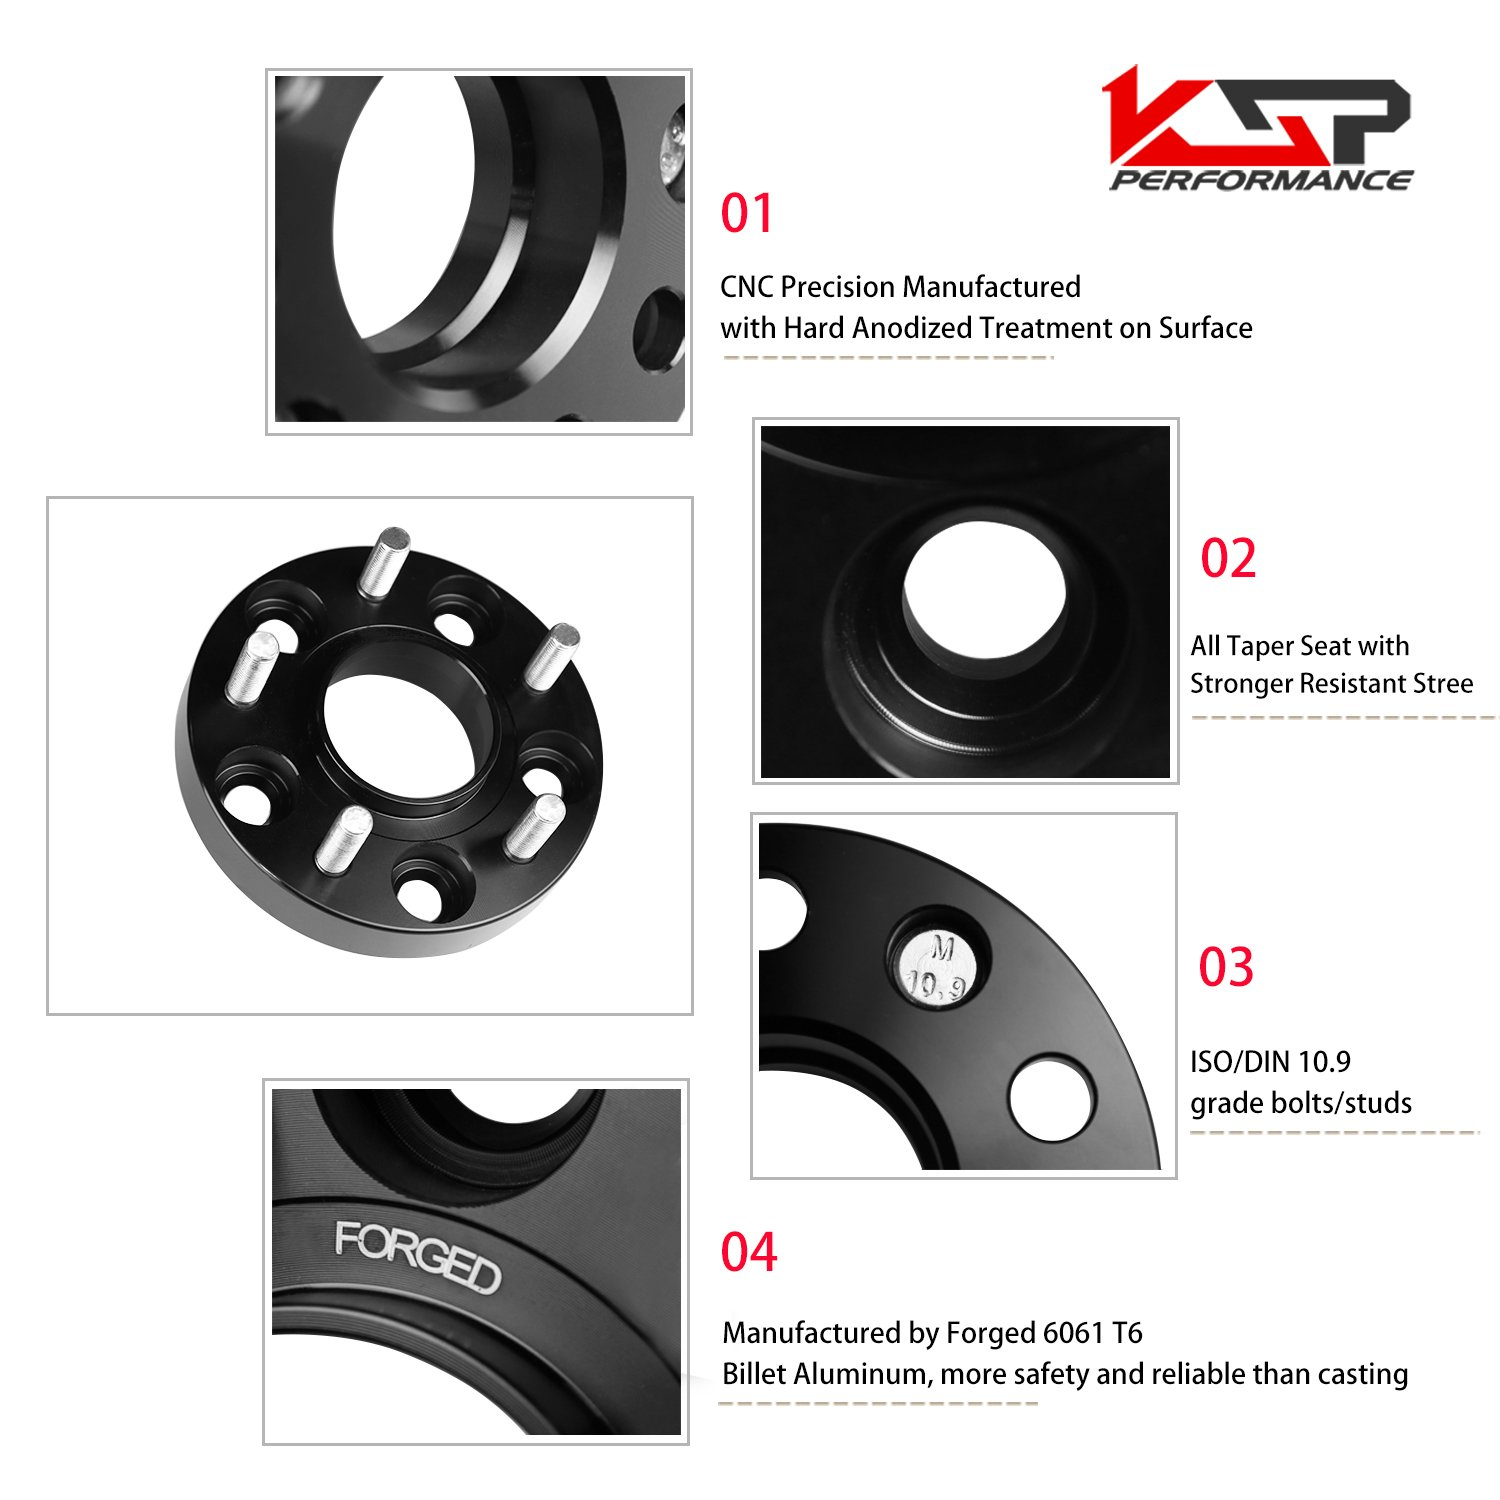 Wheel Spacers Jeep Kia Mazda,KSP 5X4.5 to 5X4.5 Thread Pitch M12x1.5 Hub Bore 67.1mm Thickness 20mm Wheel Spacer Fusion Hyundai Genesis Compass Patriot,2 Years Warranty by KSP Performance (Image #4)